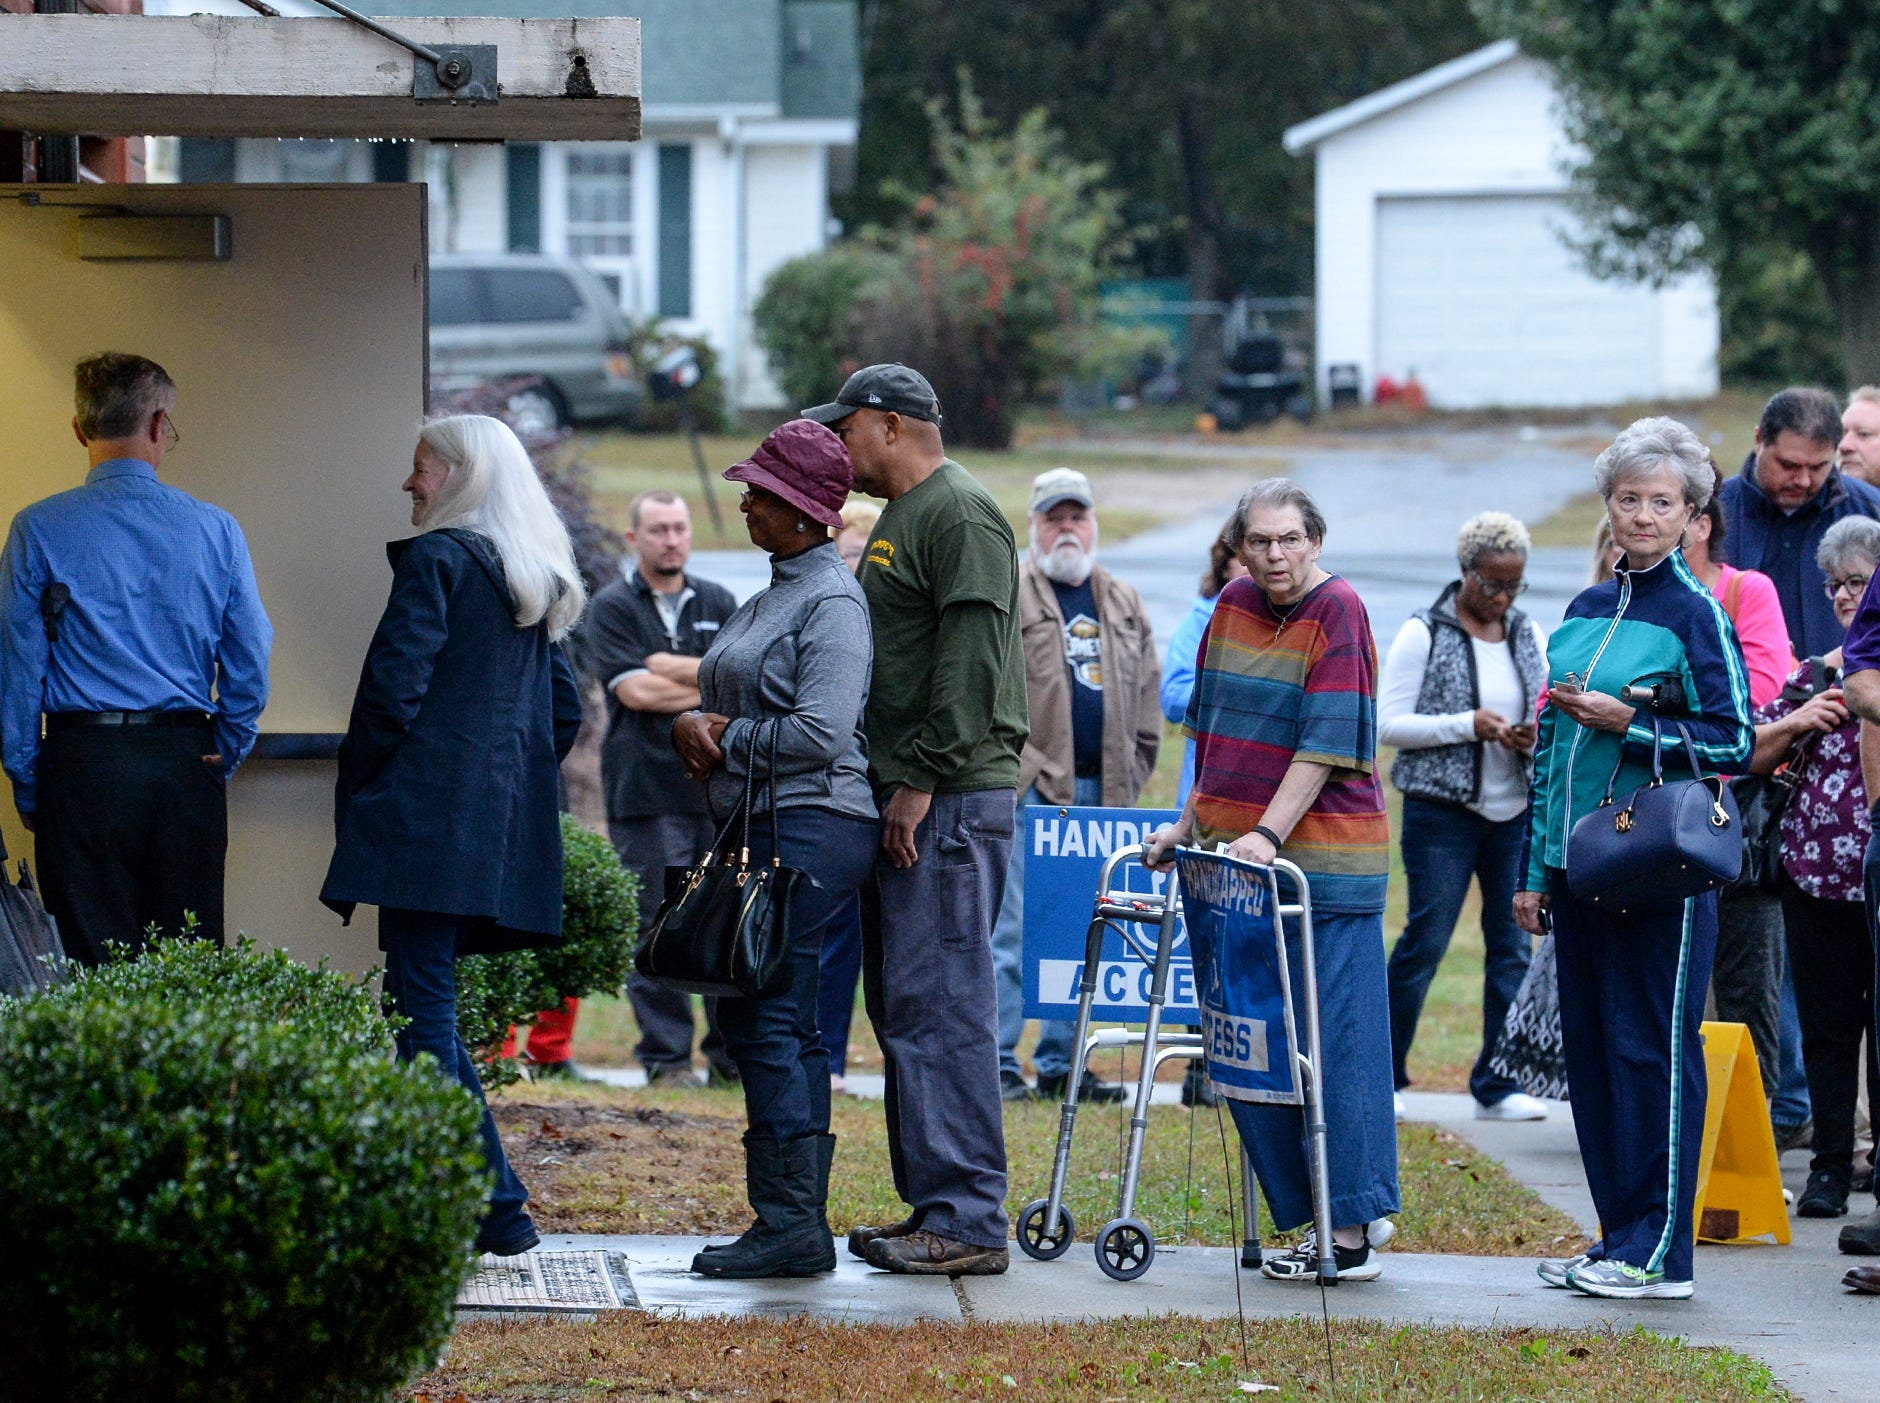 People line up at Centerville precinct during election voting in Anderson County on Tuesday, November 6, 2018.